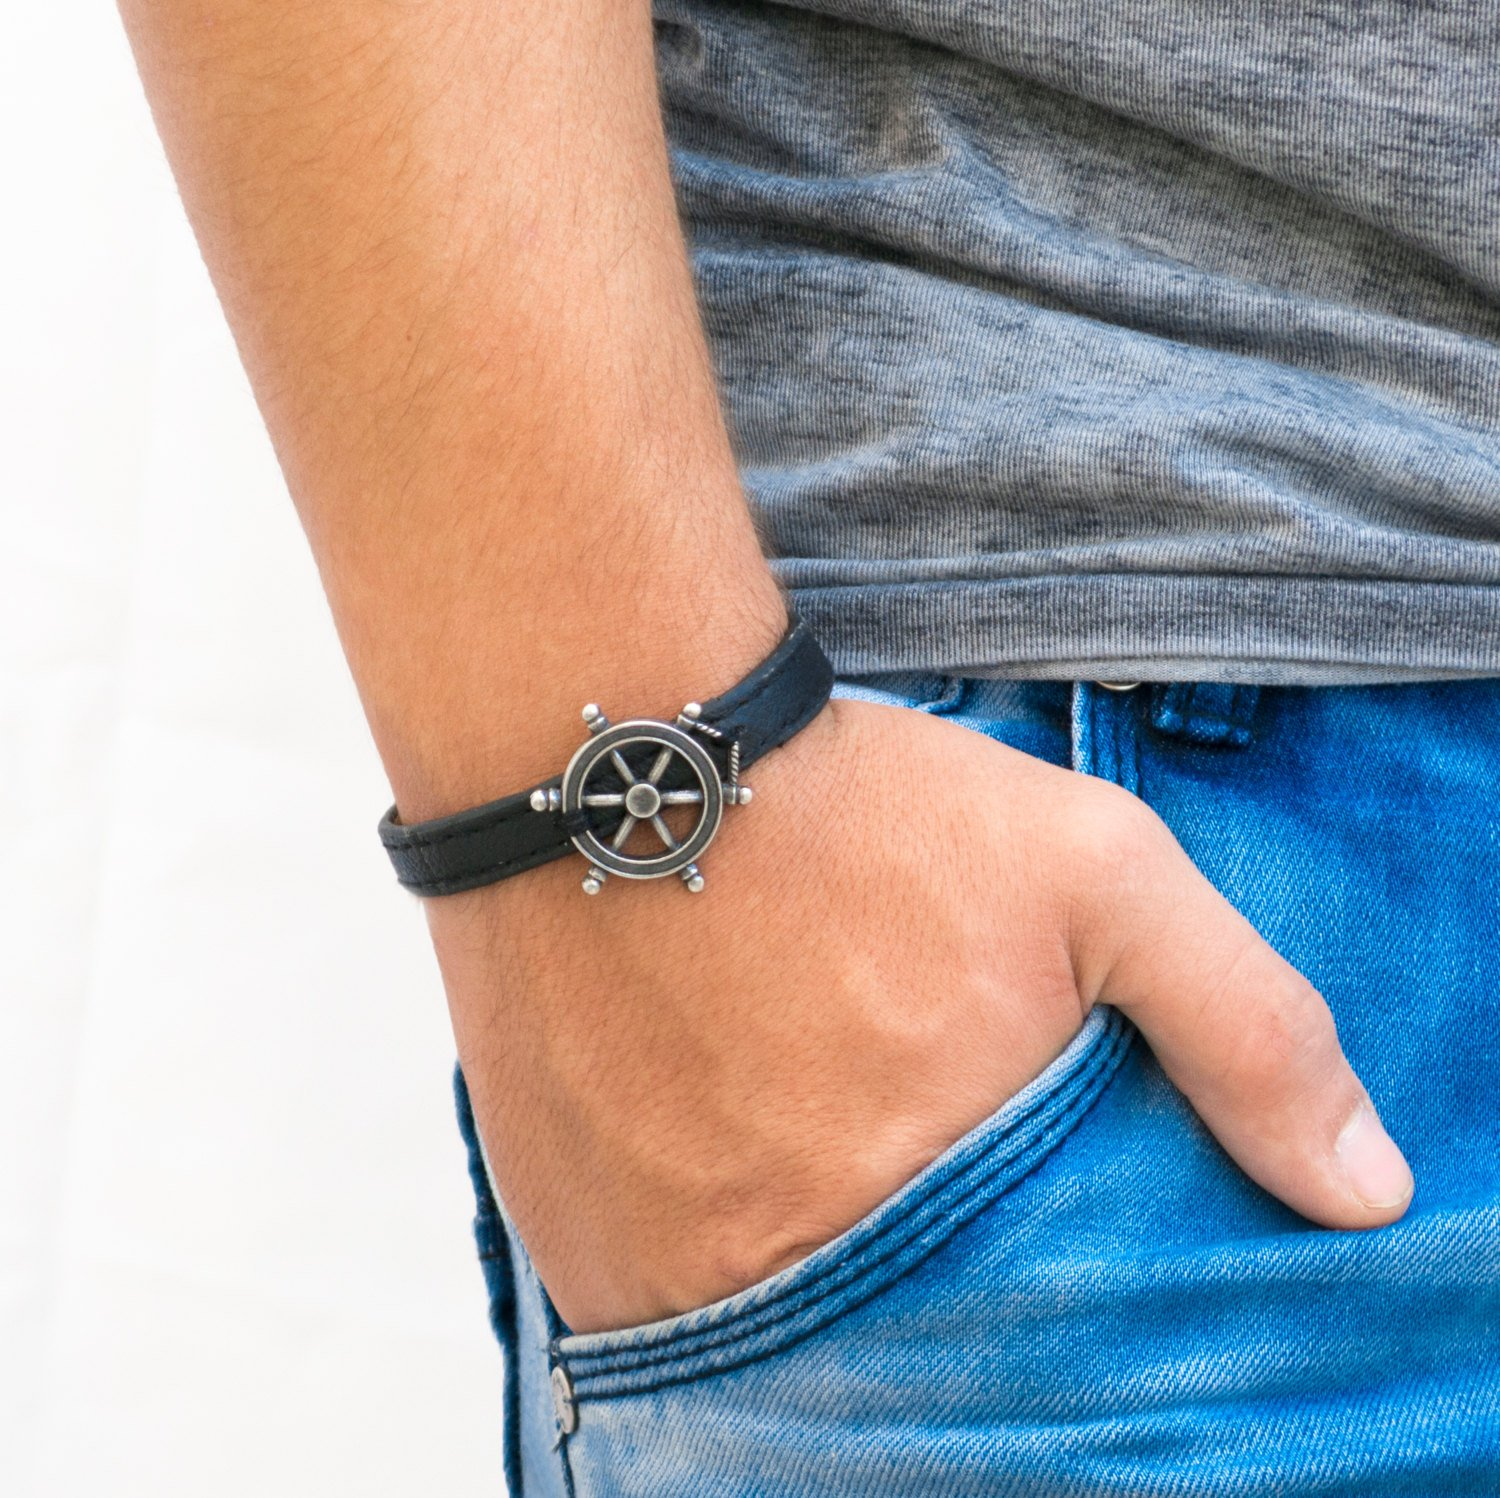 Men's Bracelet - Men's Jewelry - Men's Leather Bracelet - Men's Nautical Bracelet - Men's Gift